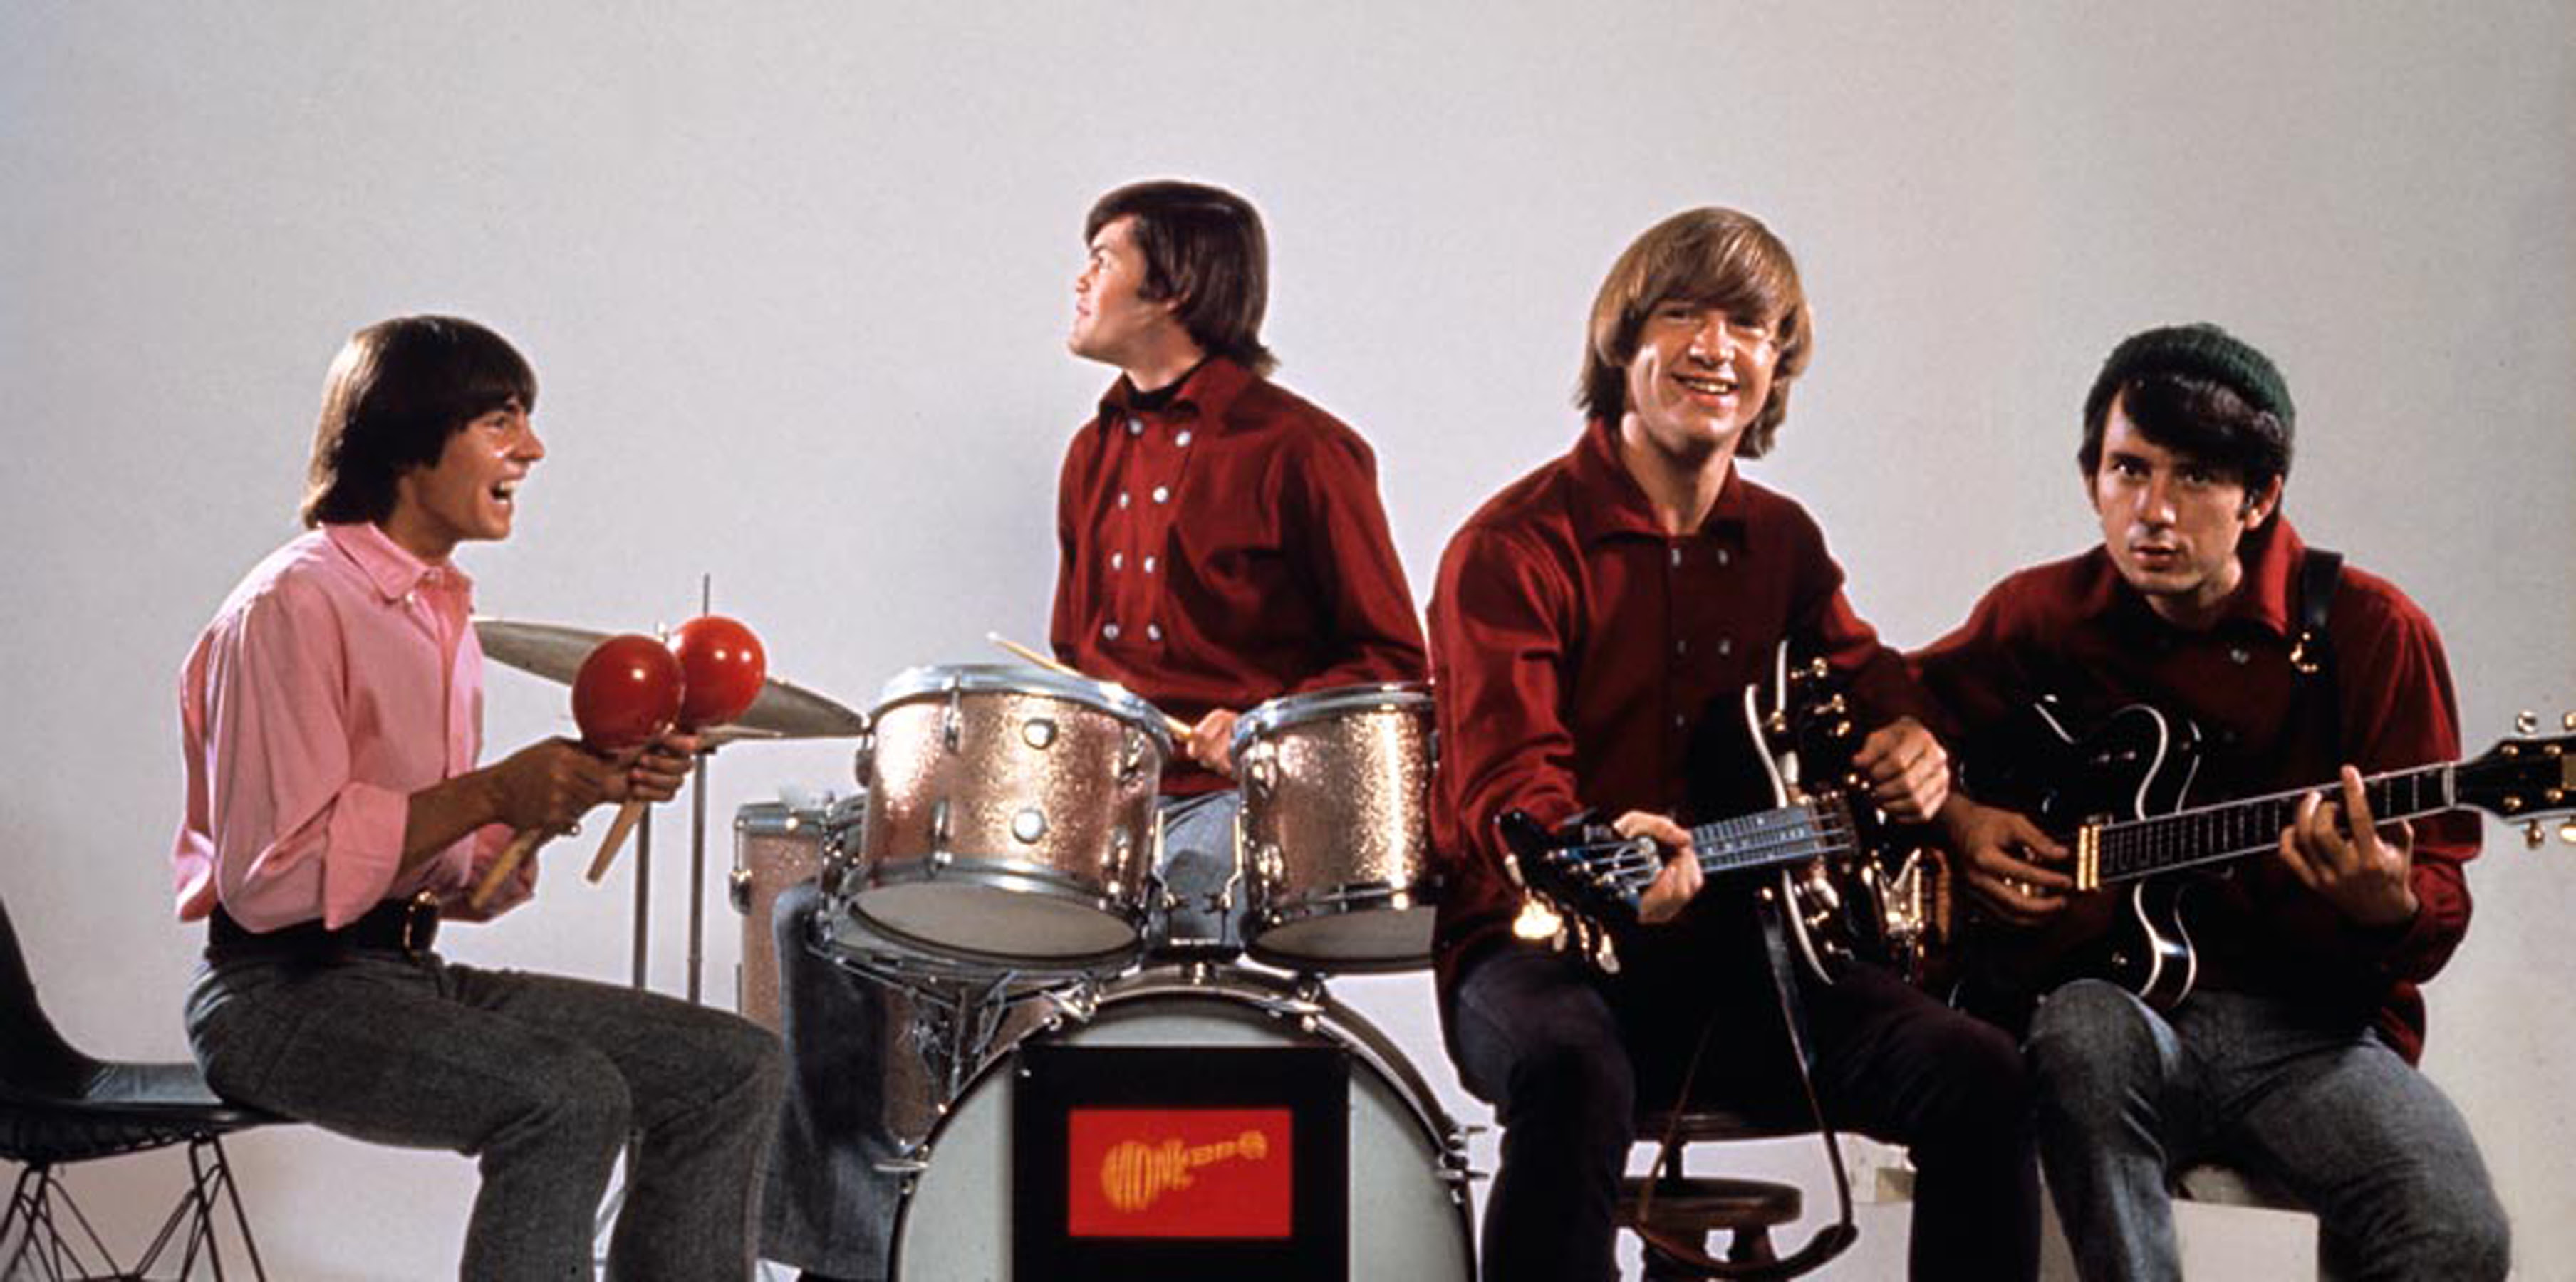 http://www.tvhistorypod.com/wp-content/uploads/2015/03/the-monkees-1966-publicity-photo.jpg